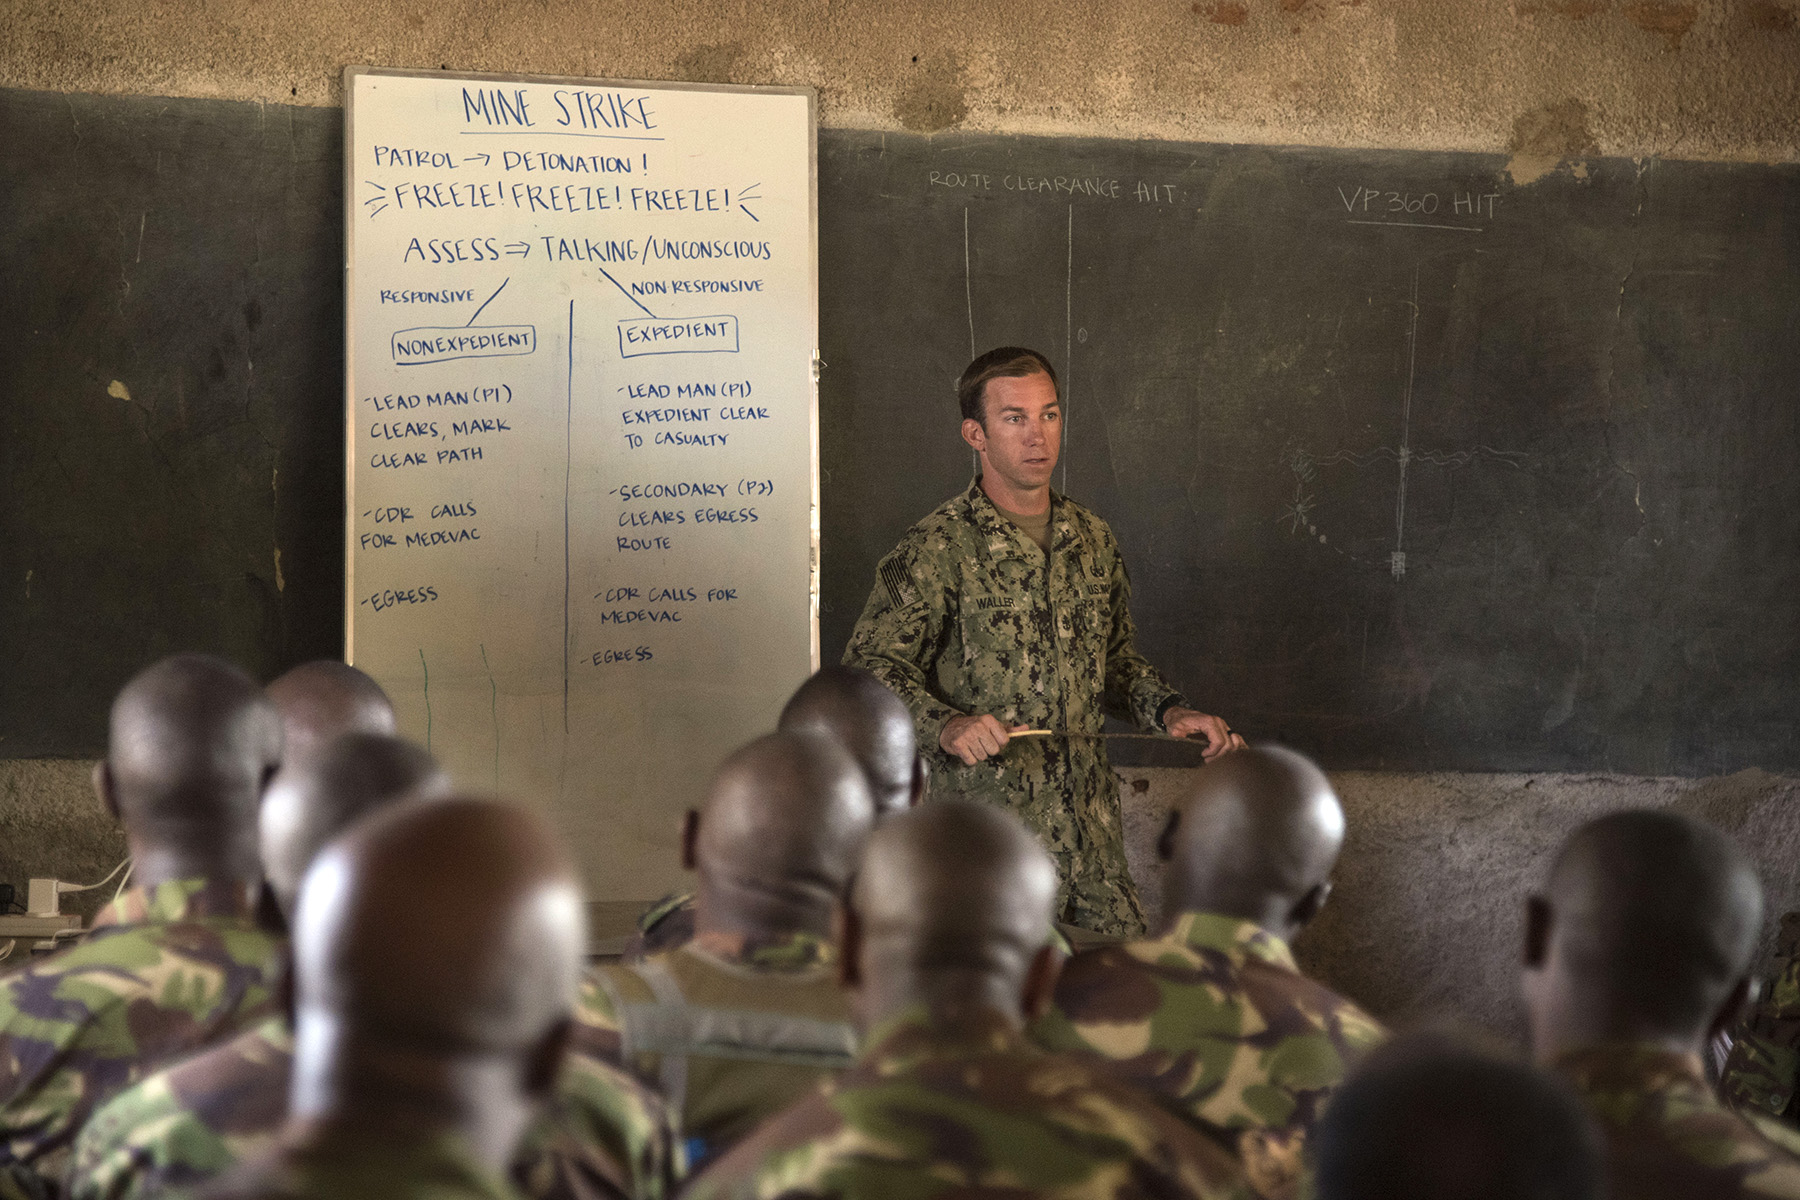 KENYA- U.S. Navy Chief Petty Officer Ryan Waller, Task Force Sparta explosive ordnance disposal technician and Deliberate Kindle instructor, explains the final portion of the tactical combat medical training to Kenyan Defense Force combat engineers during Deliberate Kindle 2016, Sept. 15, at a Kenyan training facility. The medical training was just one portion of the four-week course designed to give Humanitarian Mine Action training to course attendees, so as to prepare them for future deployments with the African Union Mission in Somalia. (U.S. Air Force photo by Staff Sgt. Tiffany DeNault)